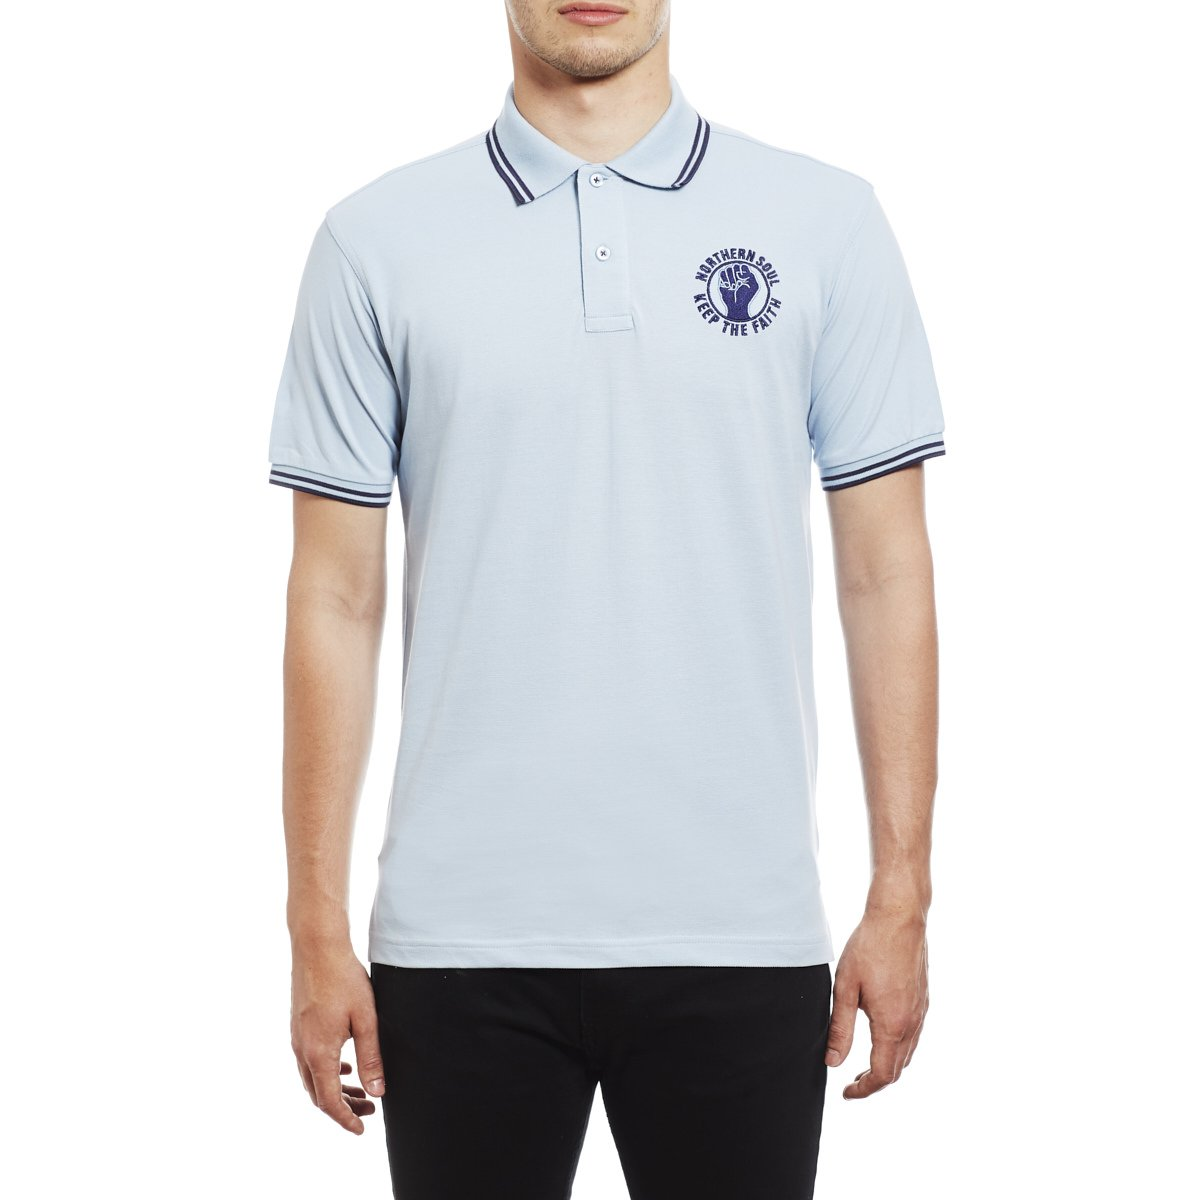 Northern Soul Keep The Faith Embroidered Polo Shirt - Polo para ...